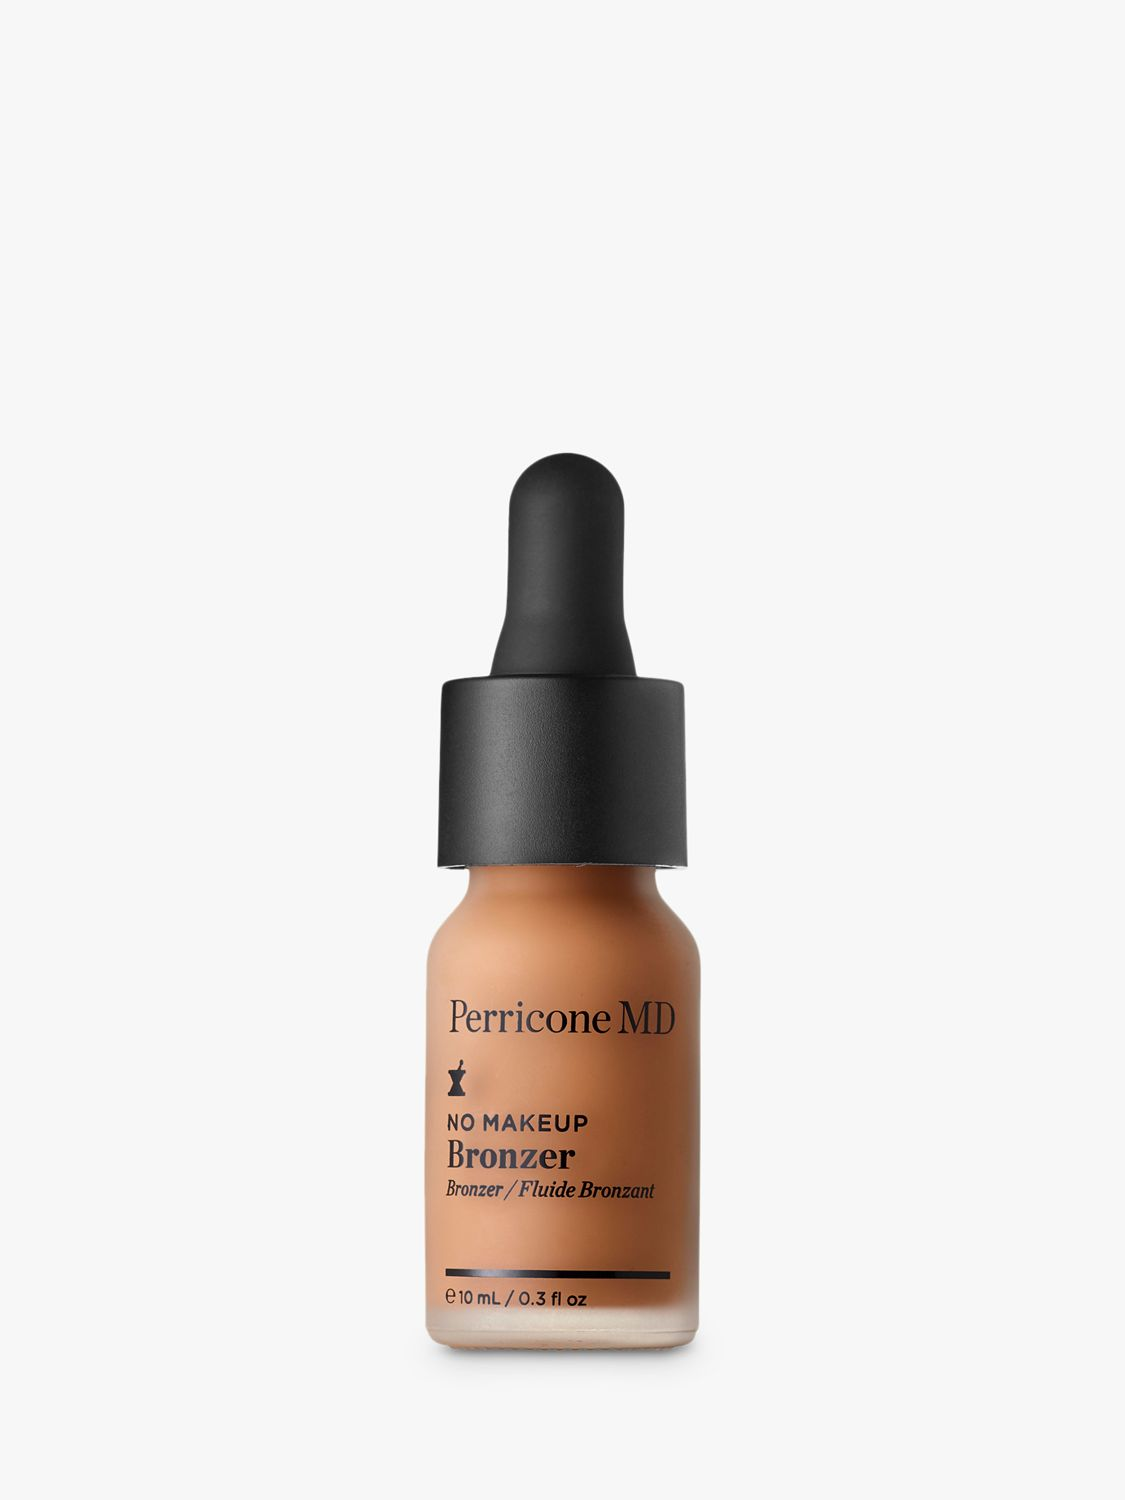 Perricone MD Perricone MD No Makeup Bronzer Broad Spectrum SPF 15